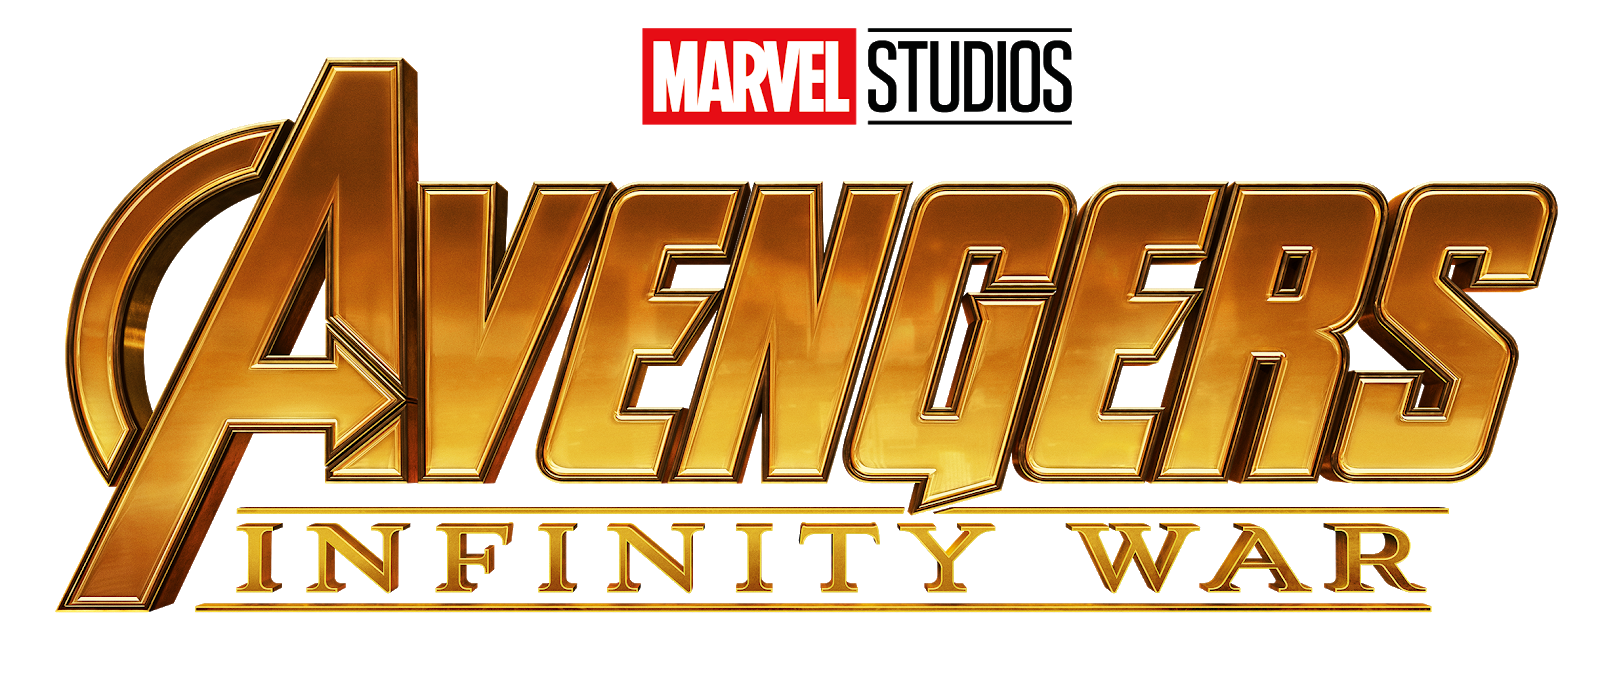 AVENGERS: INFINITY WAR - 2 Logos PNG 2 - Textless Movies